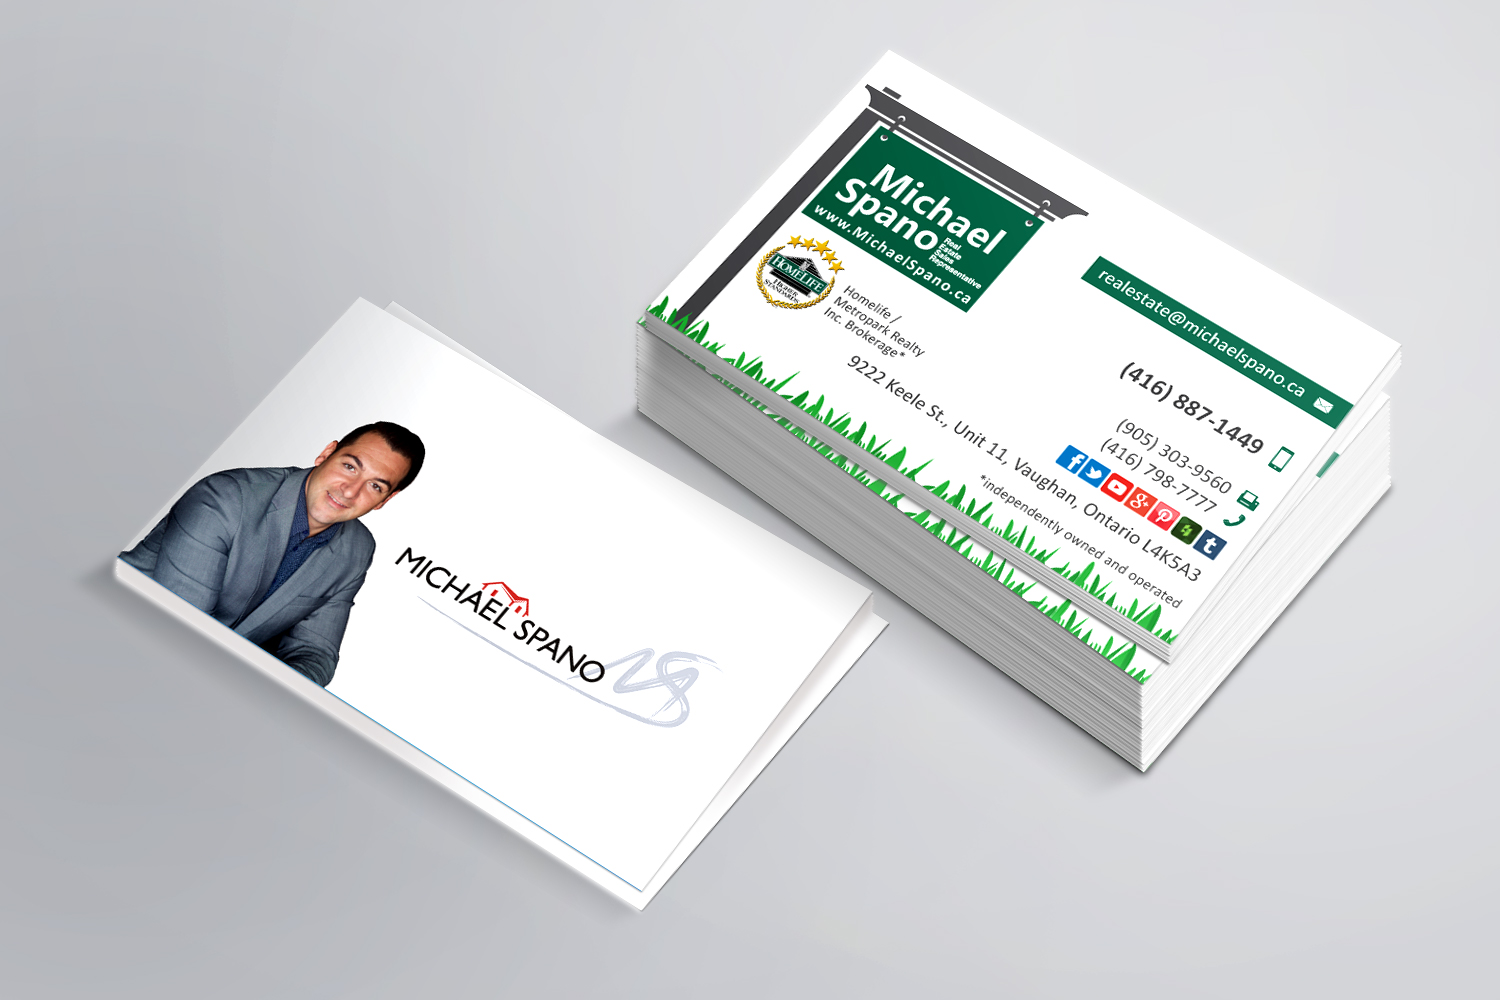 Michael spano cards go online marketing reheart Images